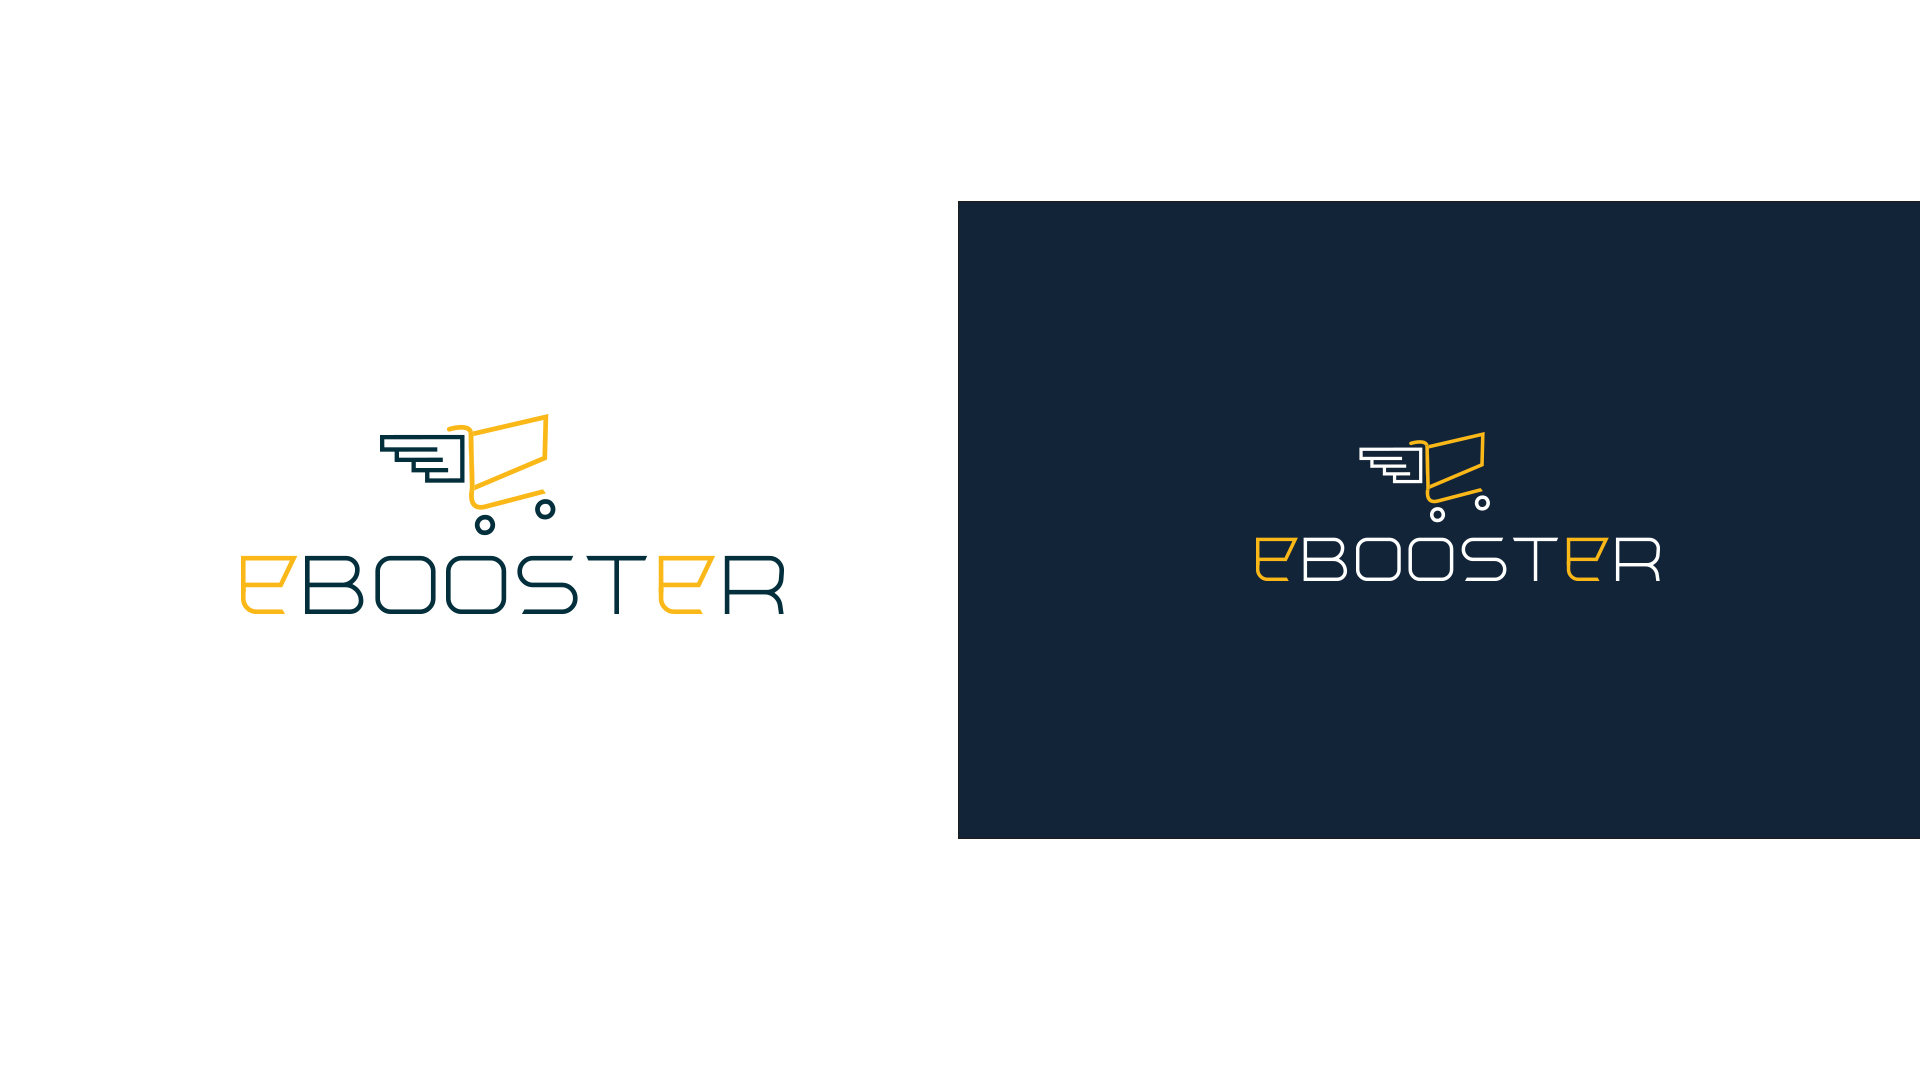 002_ebooster